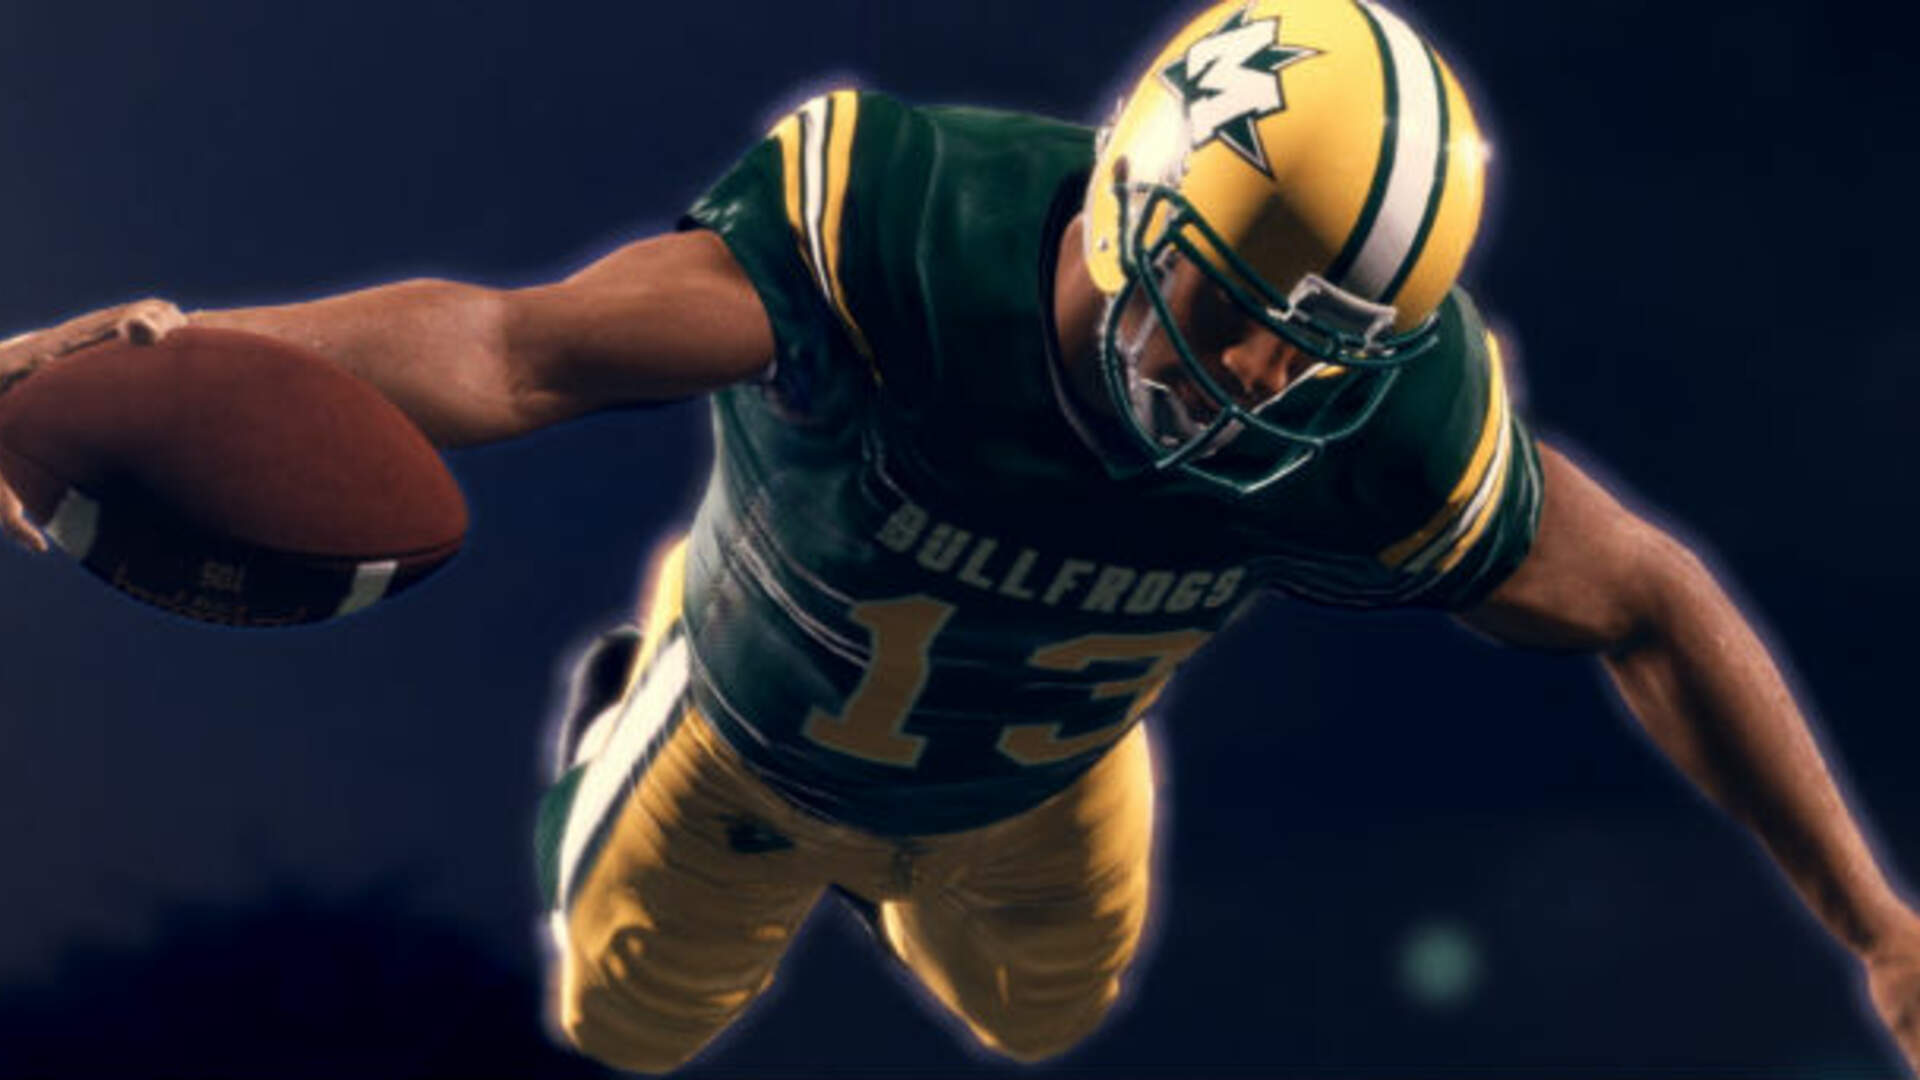 My Three Main Takeaways After Experiencing Madden 18 With the Frostbite Engine